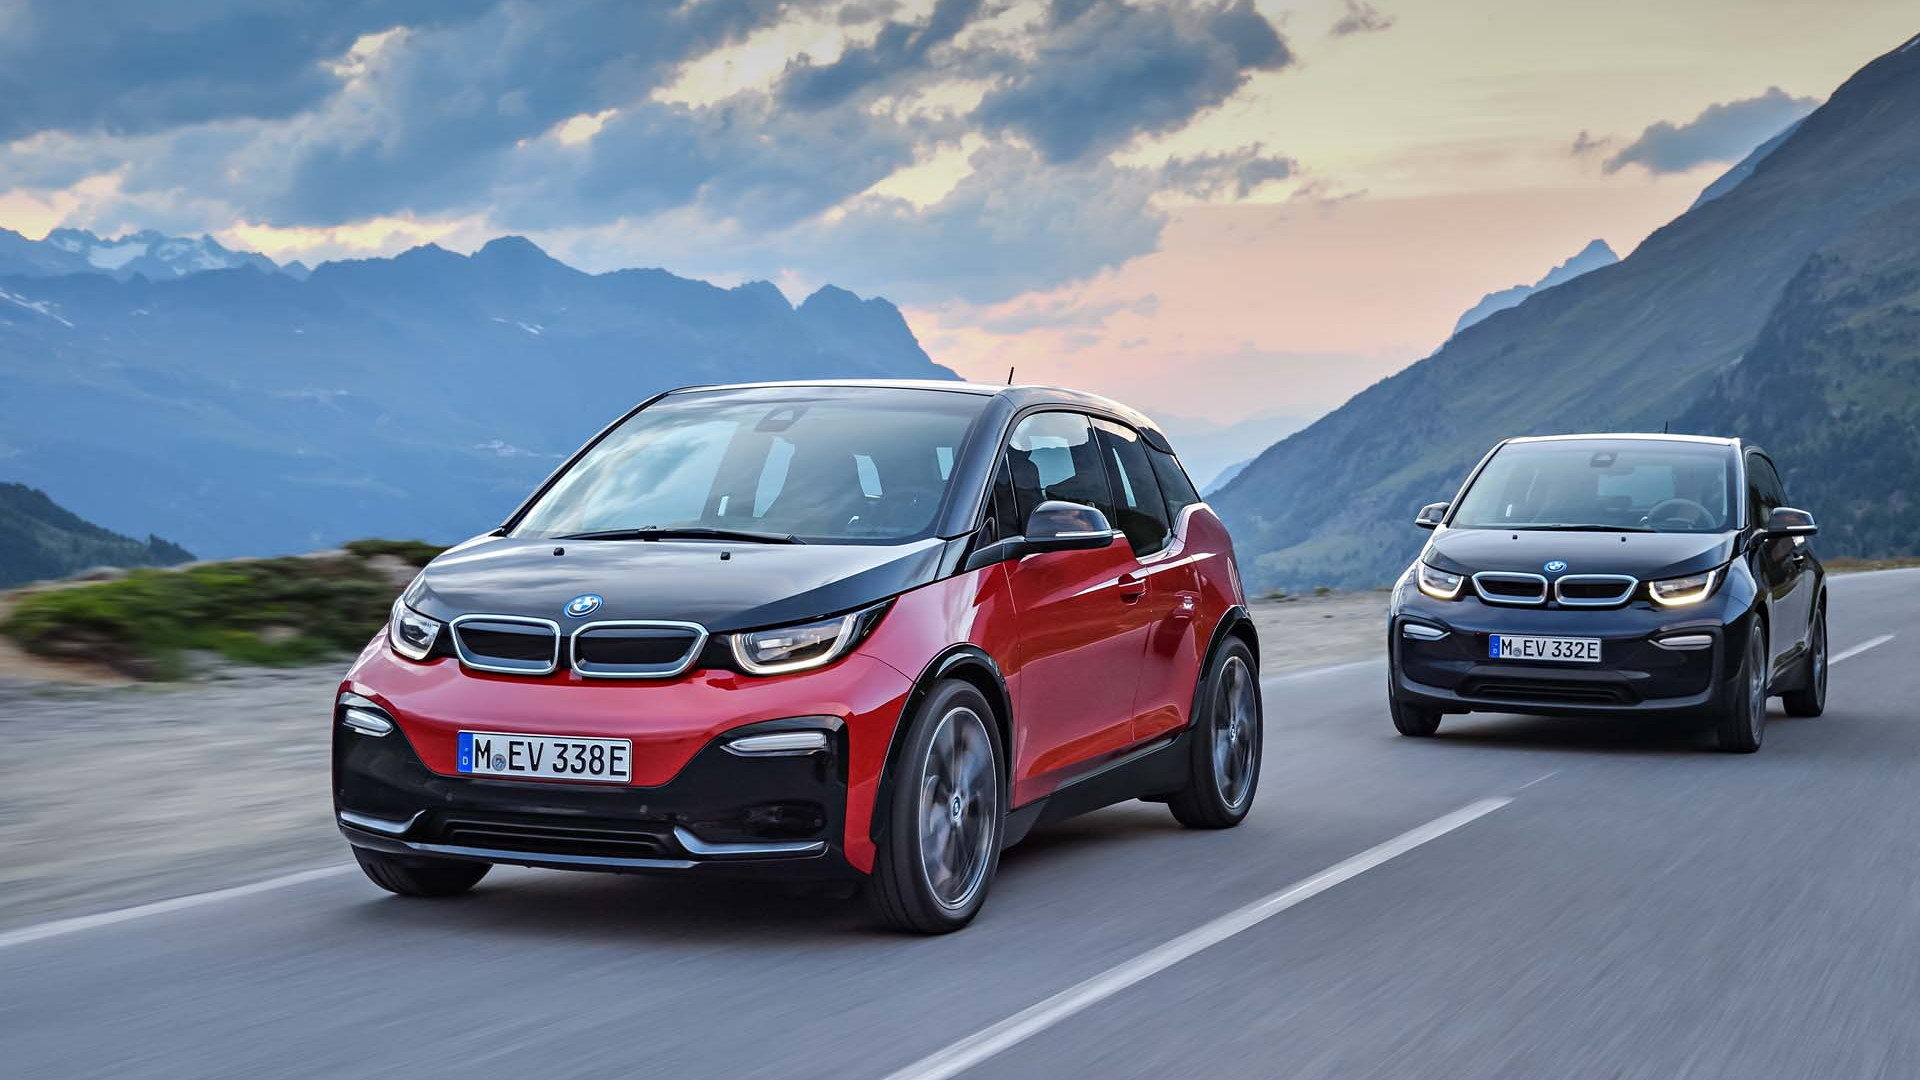 2018 BMW i3 and i3s